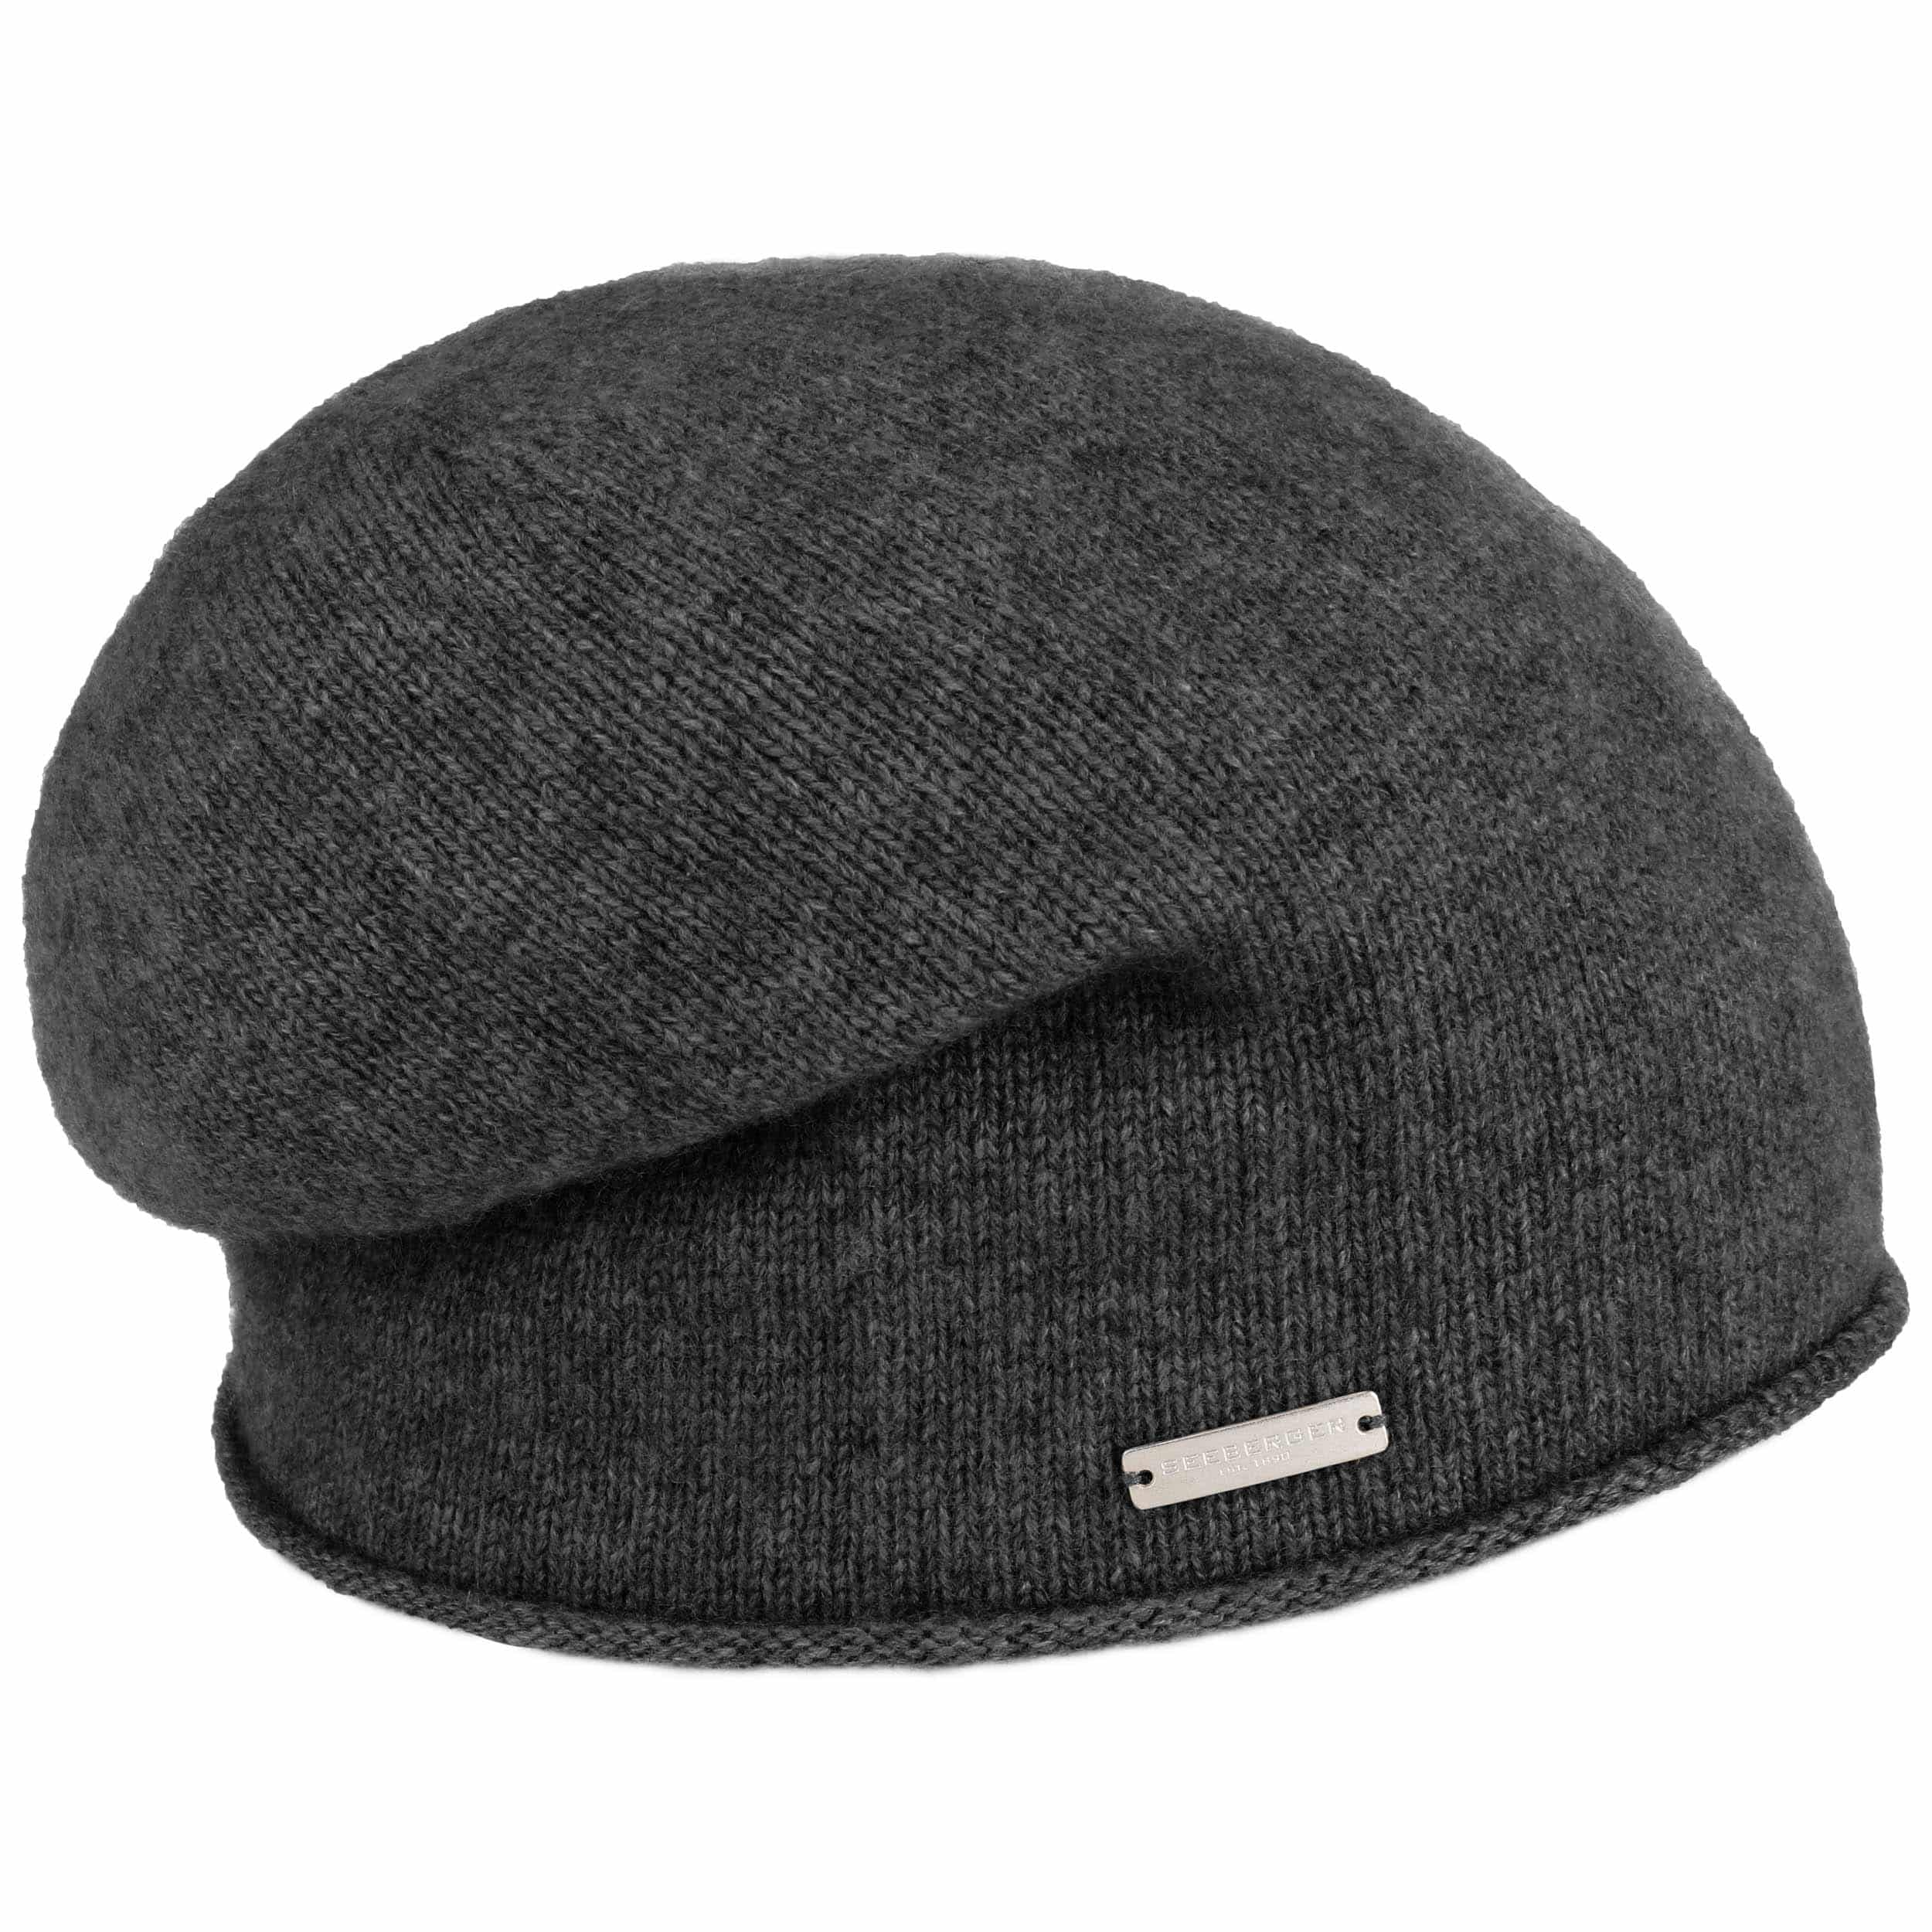 68f7683afdf ... Rolled Edge Cashmere Beanie by Seeberger - anthracite 4 ...